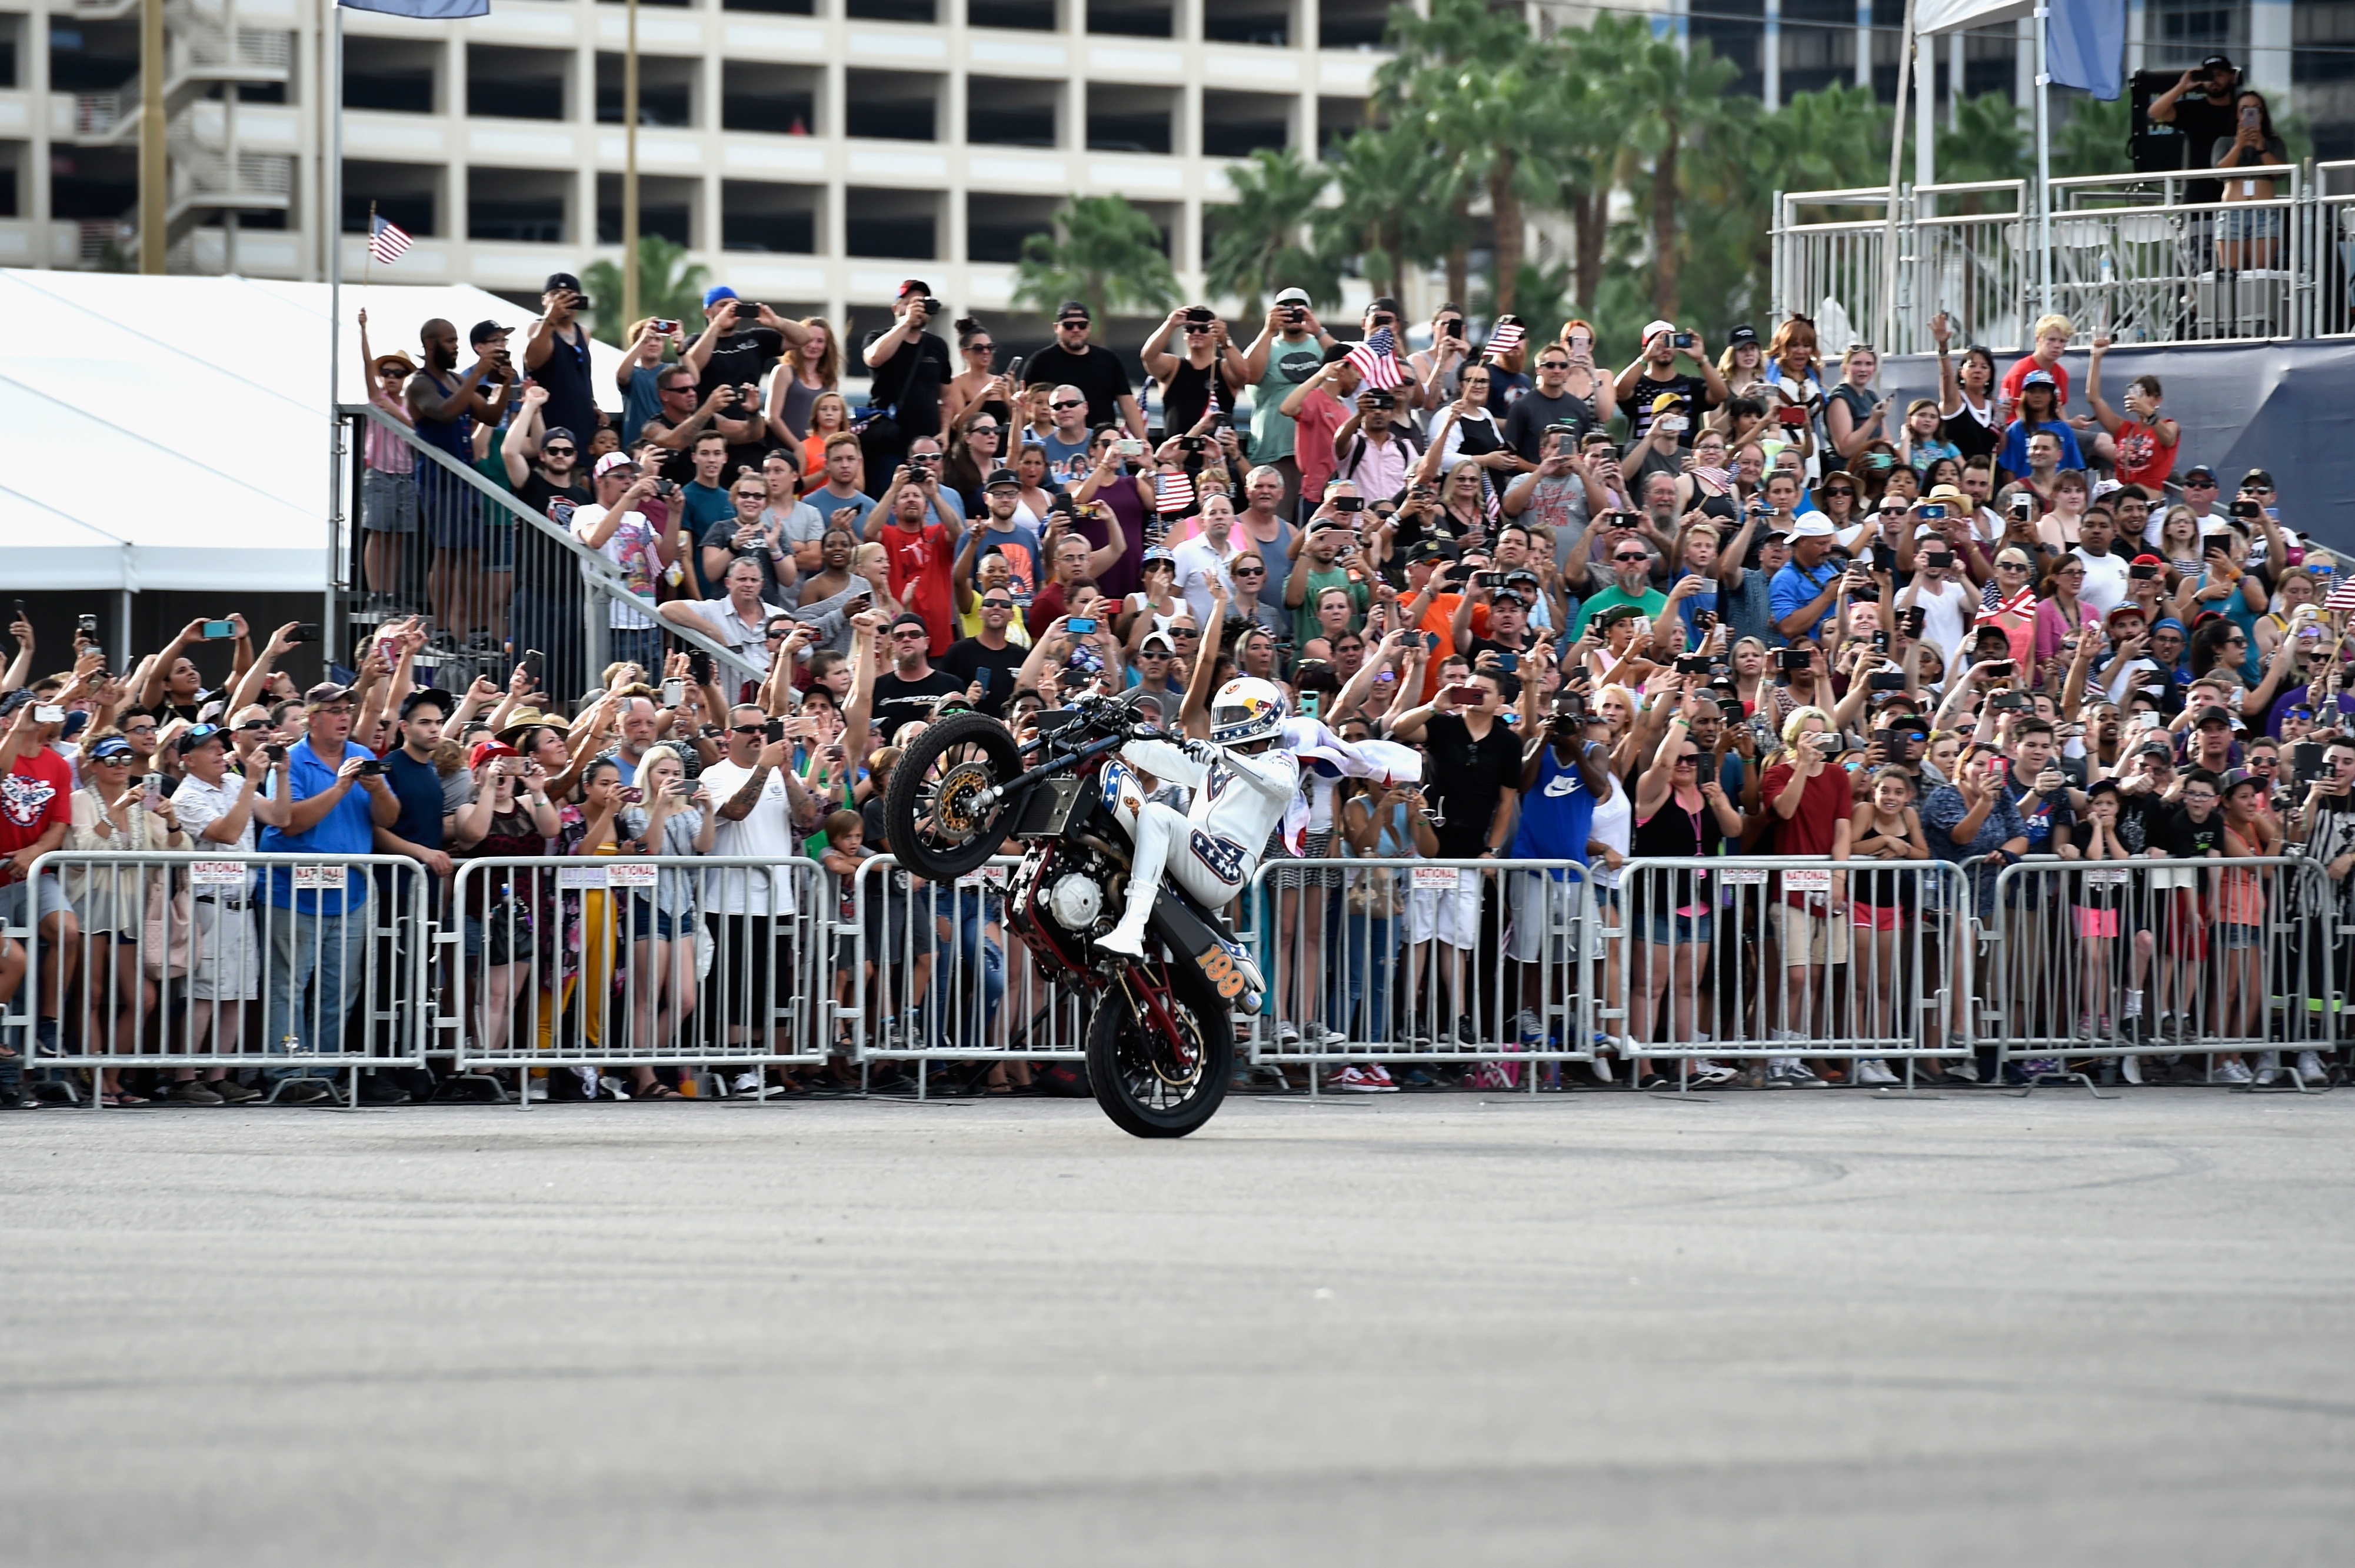 Travis-Pastrana-Evel-Knievel-Indian-Jump-b664a61d